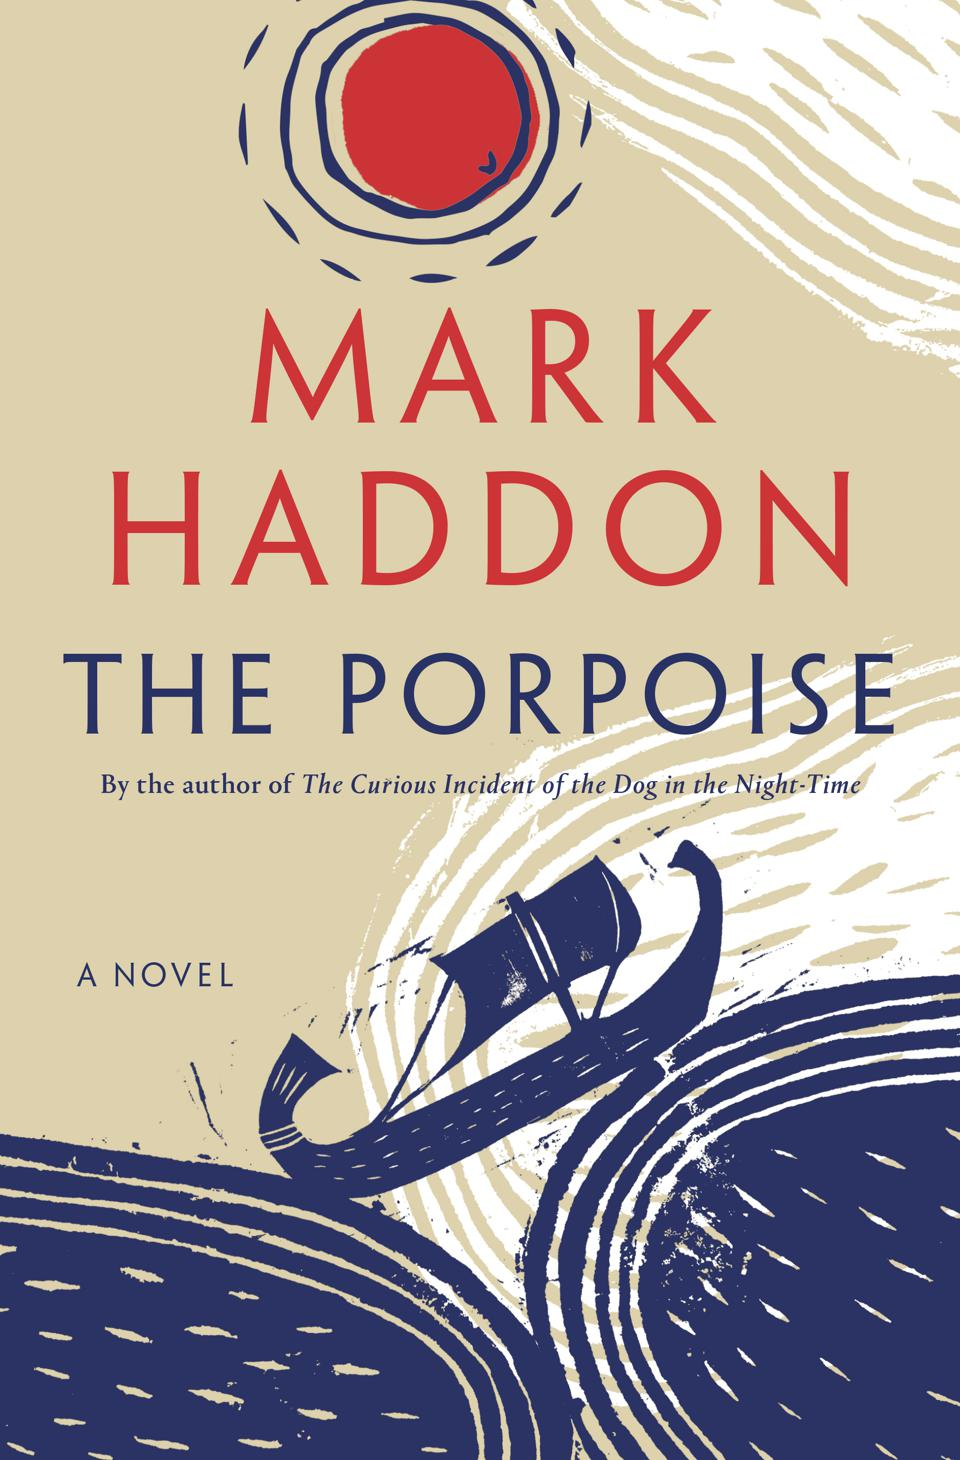 mark haddon purpoise book cover emily mahon novel fiction